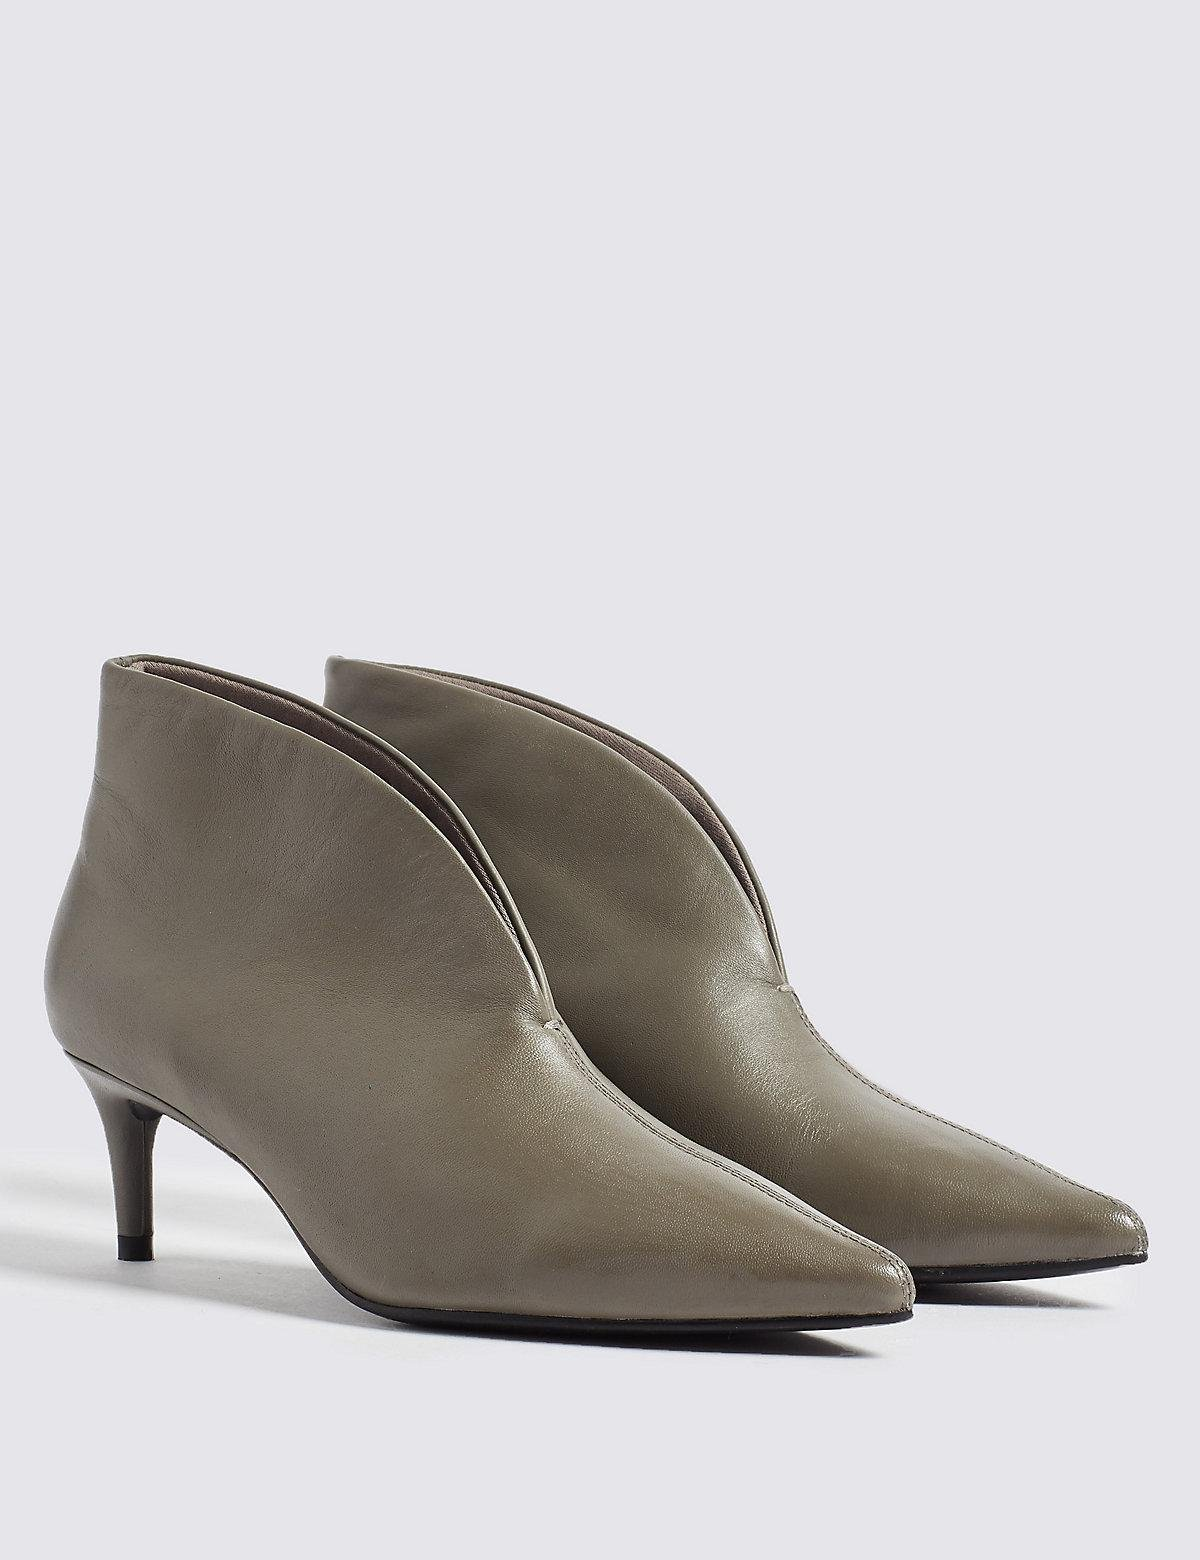 23a8ce7439e60 Marks & Spencer Leather Kitten Heel Shoe Boots in Gray - Lyst